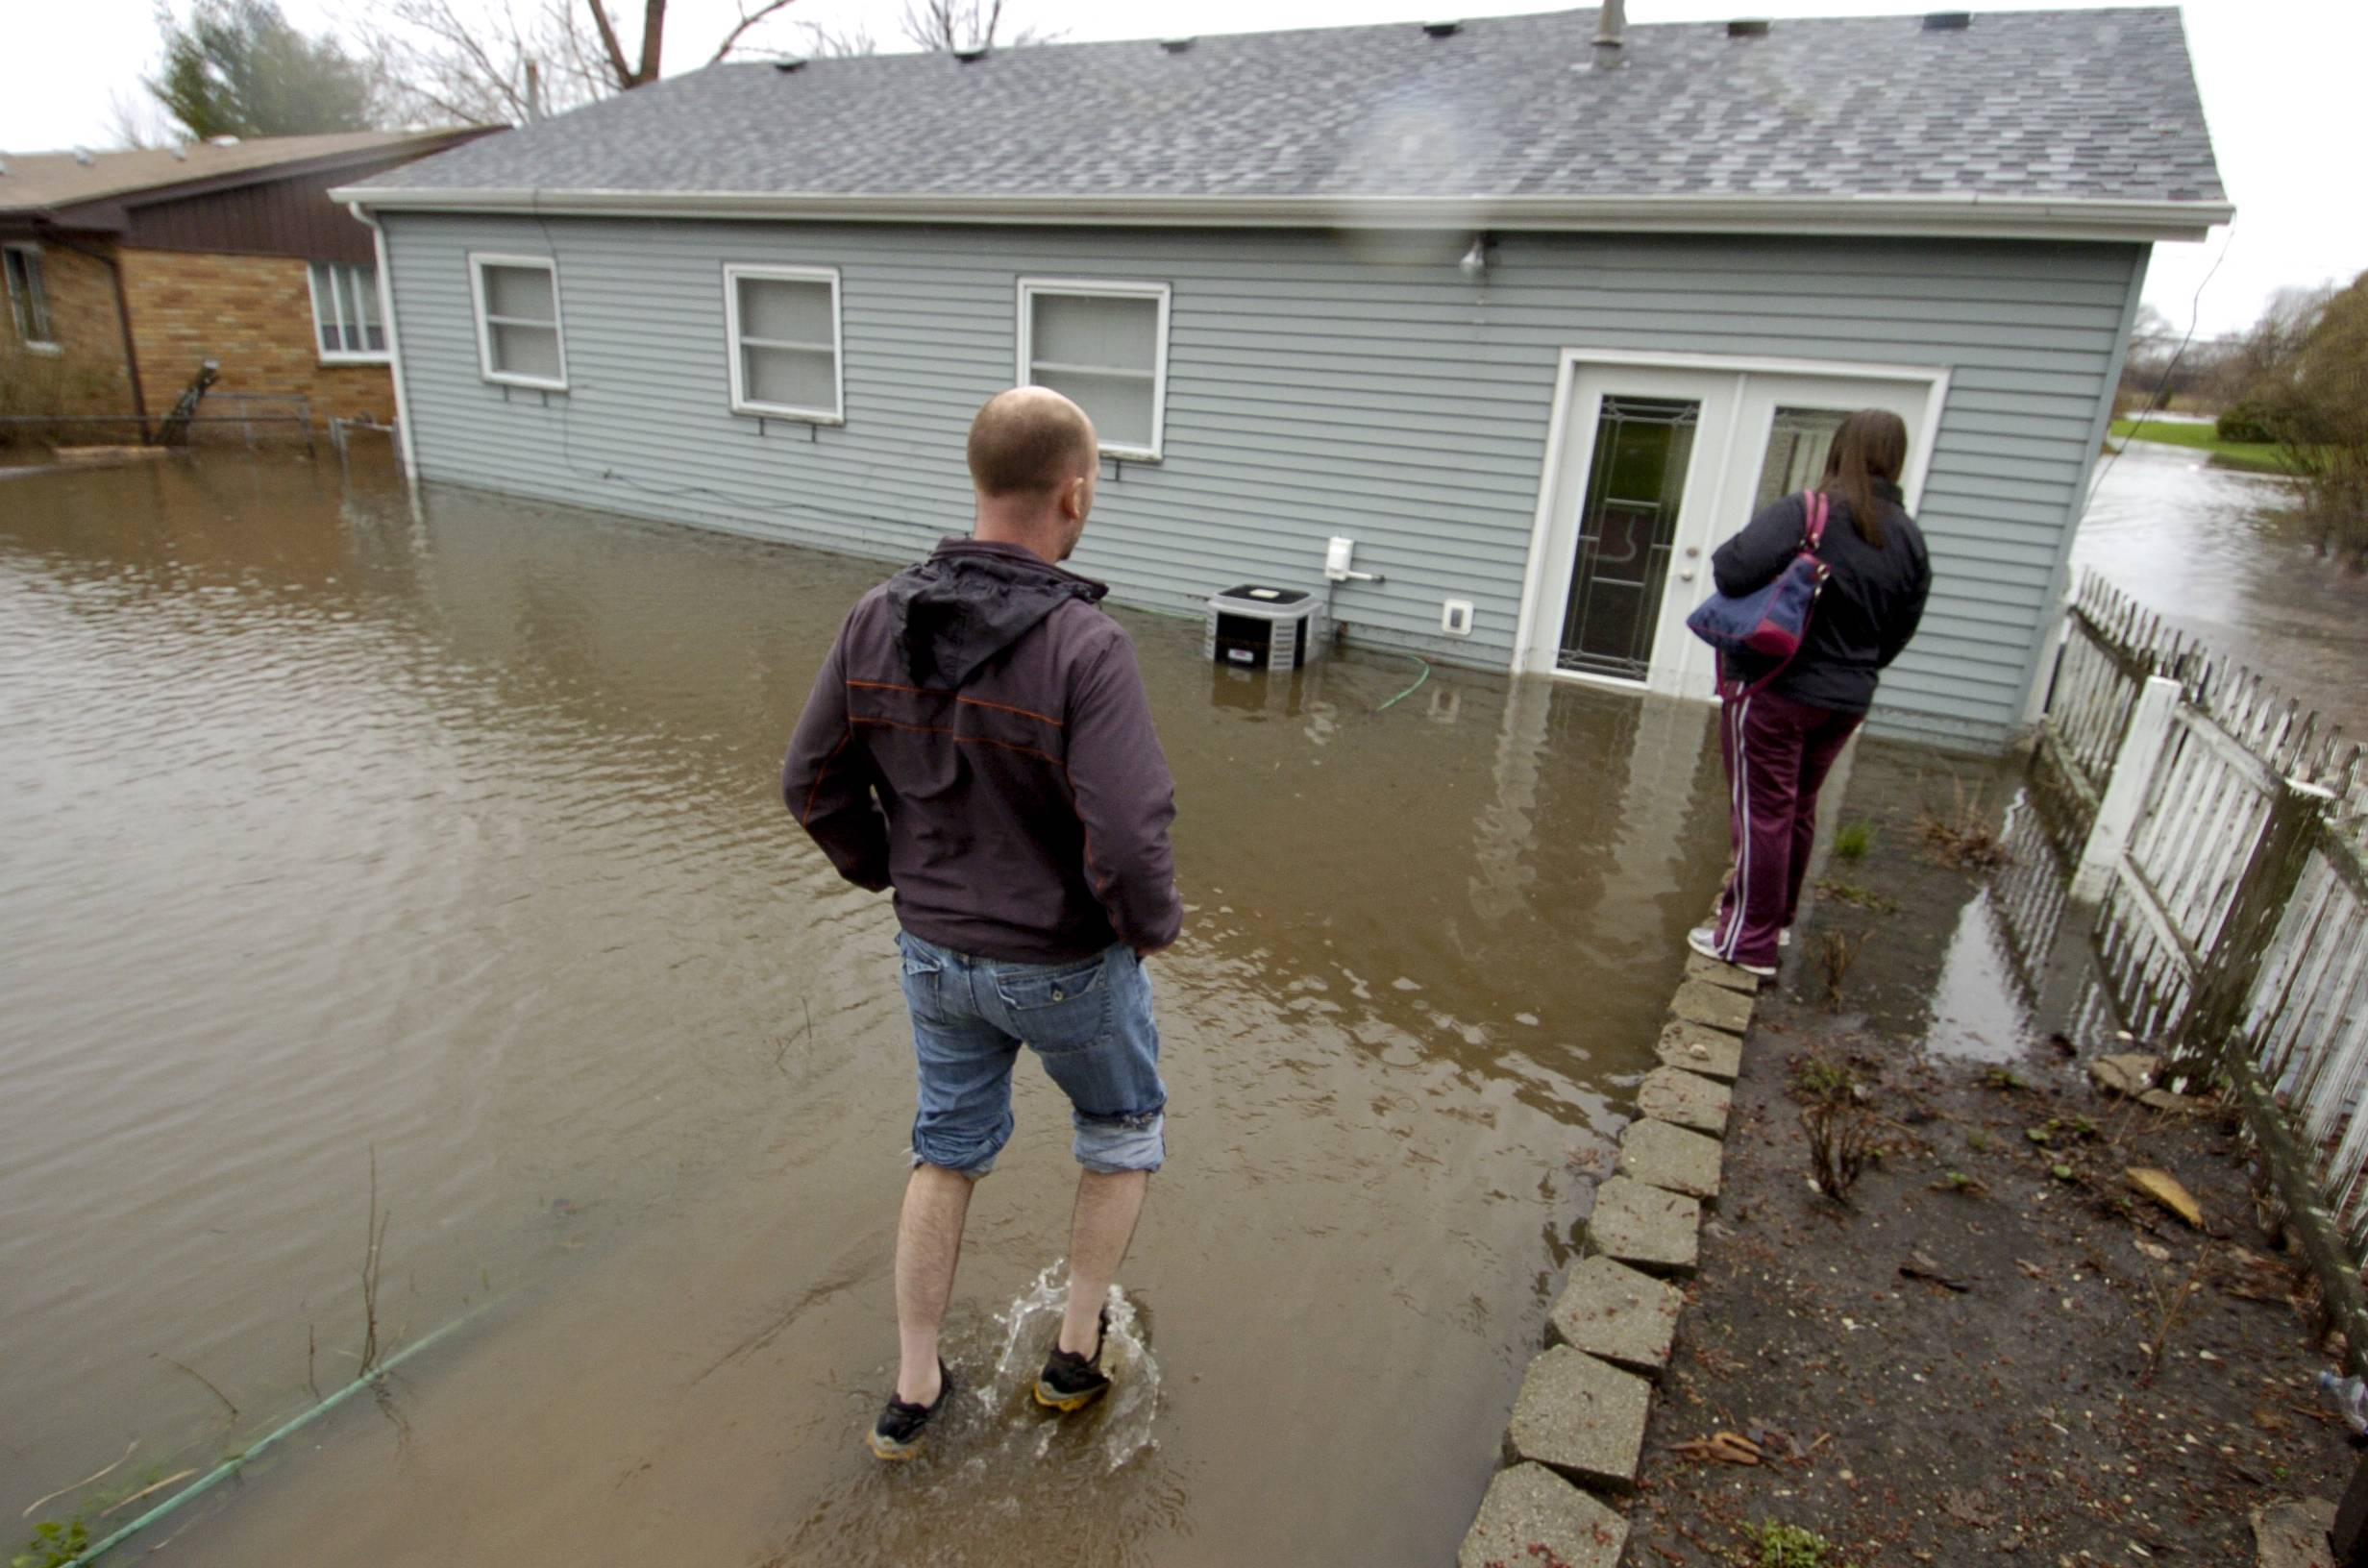 Kurt and Debra Langworthy enter their flooded home on Finley Road in Lombard.